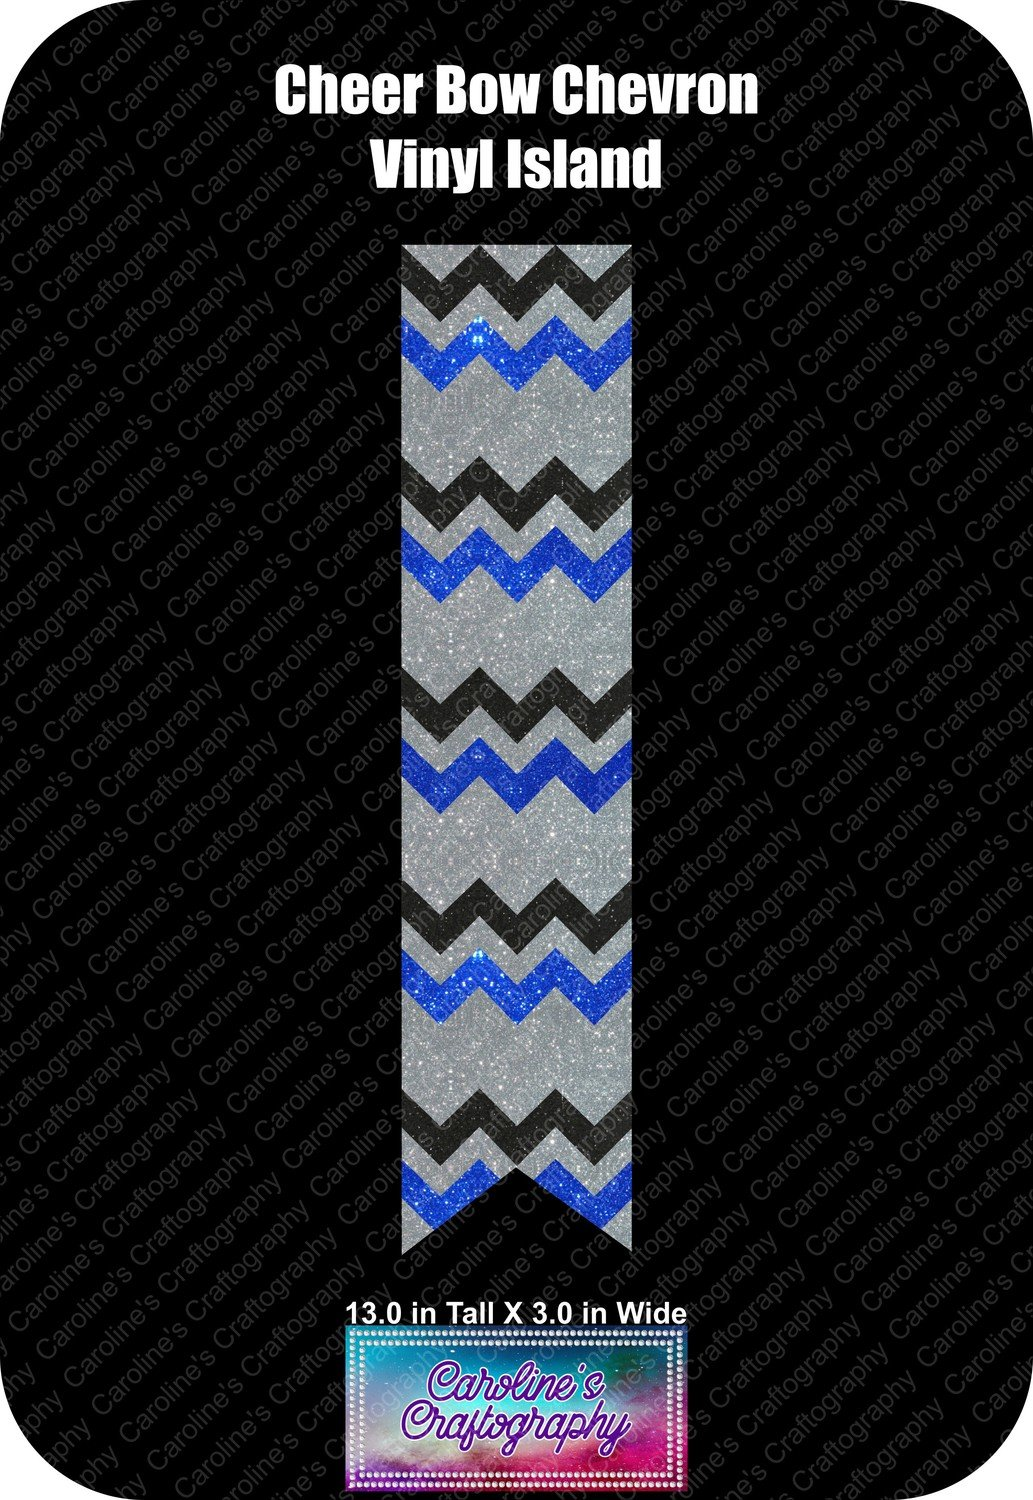 Cheer Bow Chevron Vinyl Island 3in